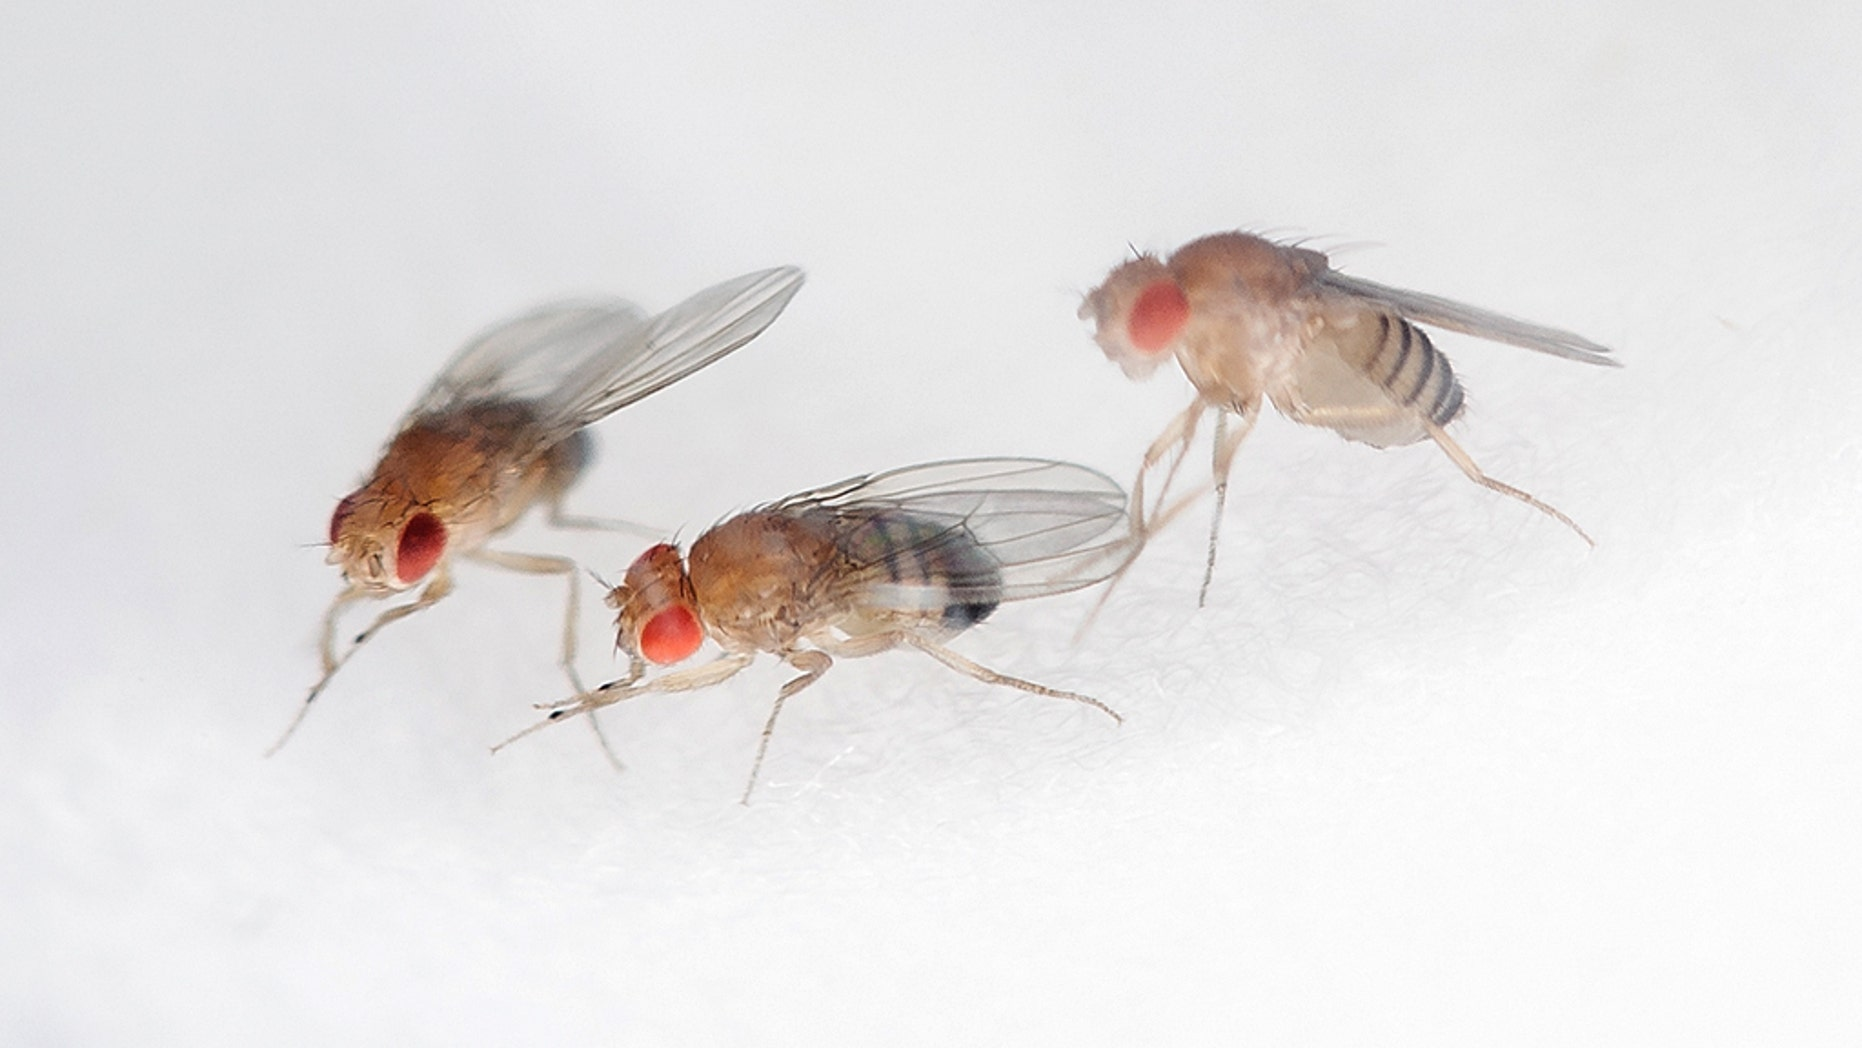 Fruit flies breed in drains, garbage disposals, and other moist areas.